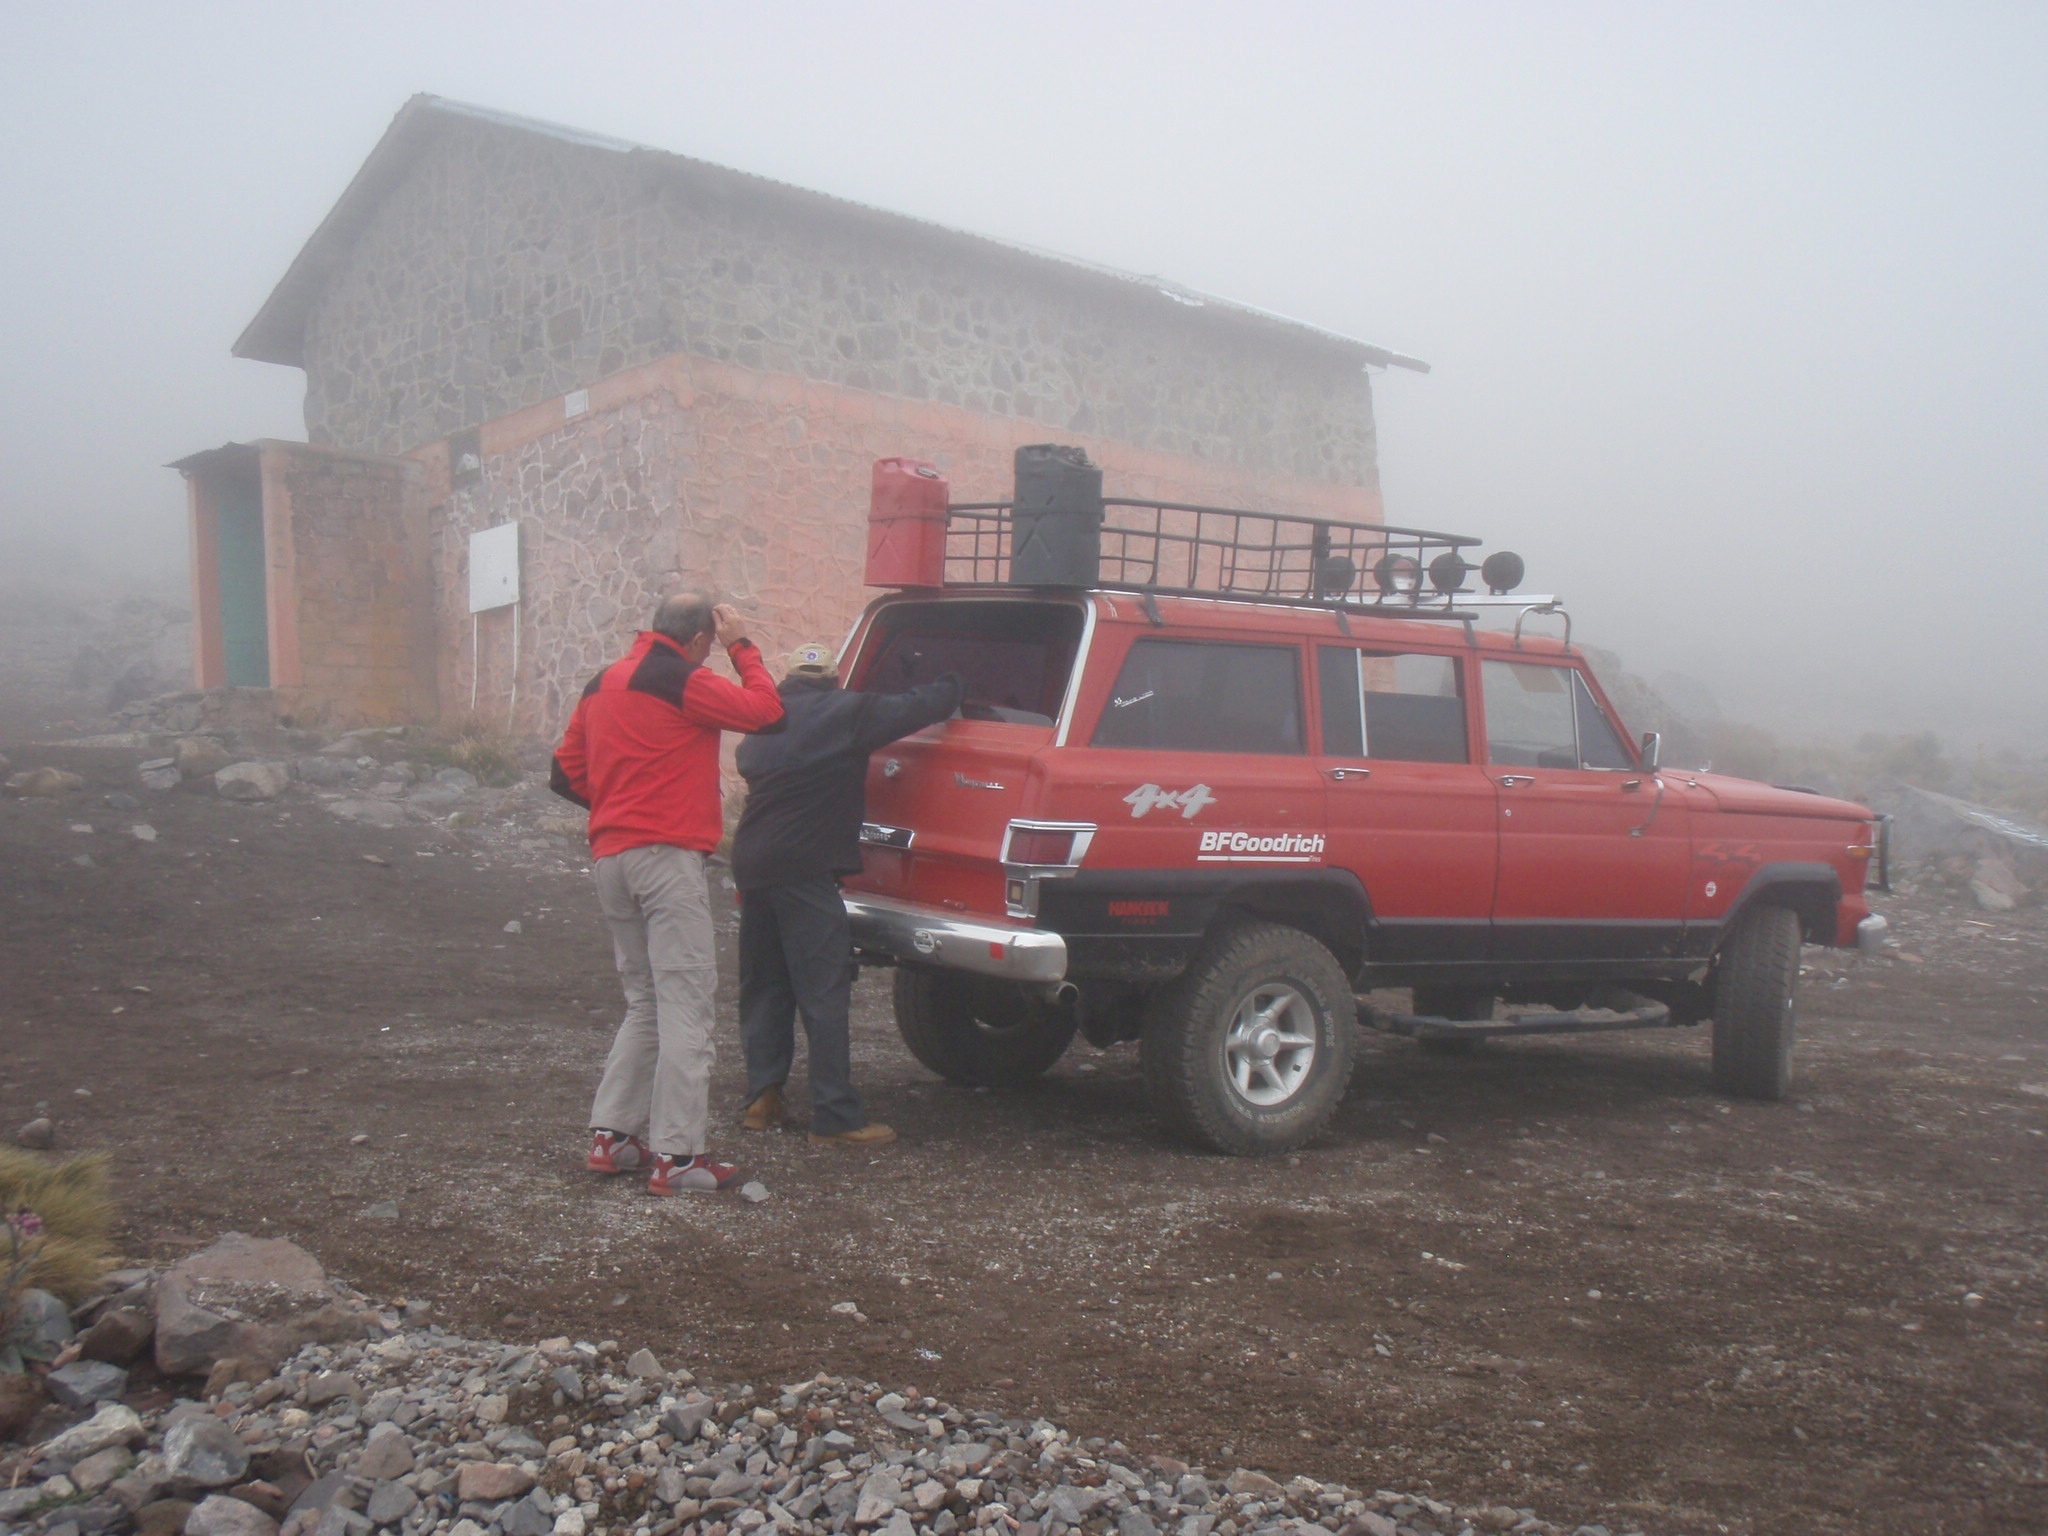 Arriving at the Piedra grande hut with the 4 wheel drive